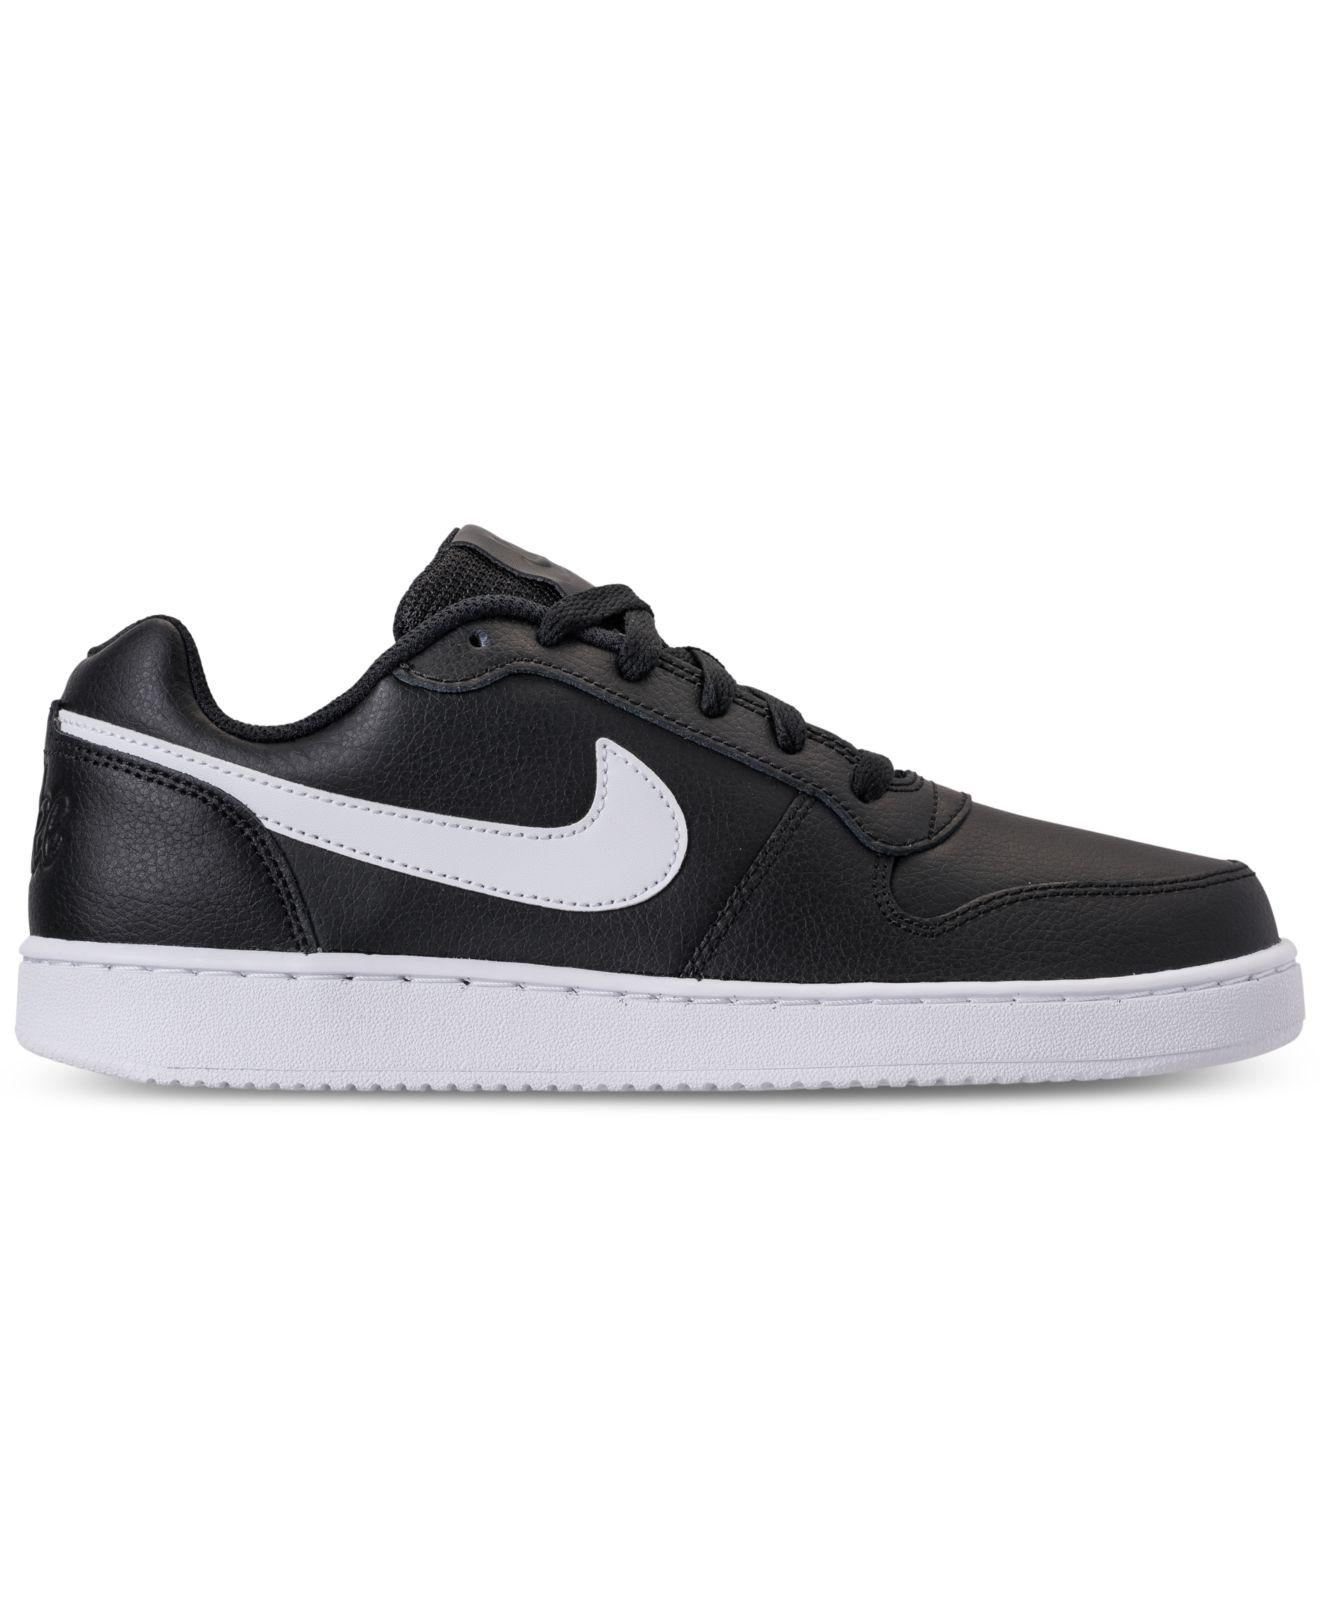 aac3f318ae Lyst - Nike Ebernon Low Casual Sneakers From Finish Line in Black for Men